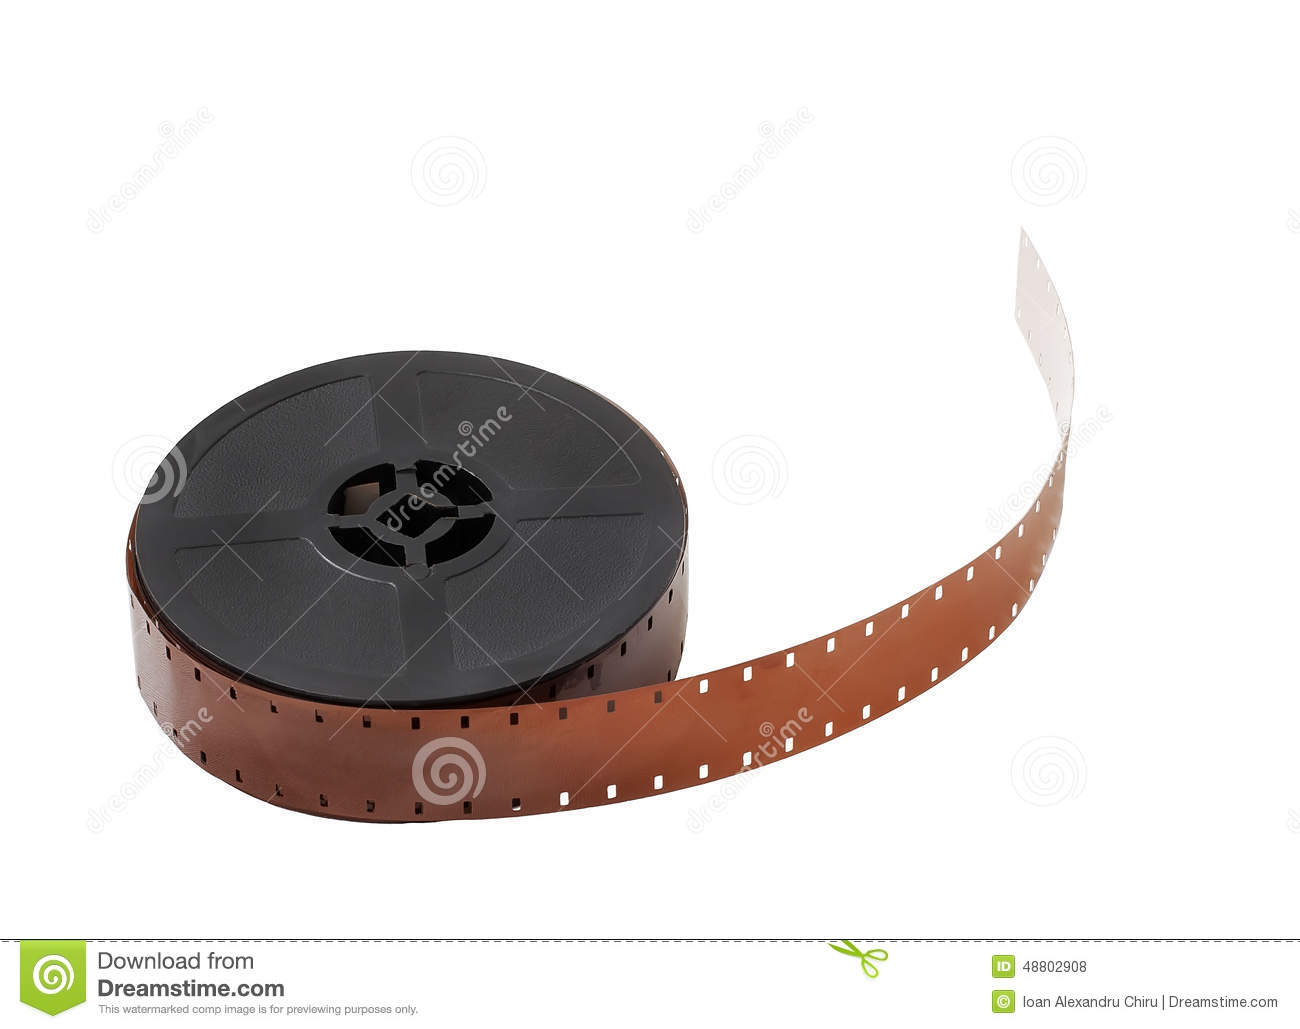 Detail of a reel of 16mm film isolated on white background